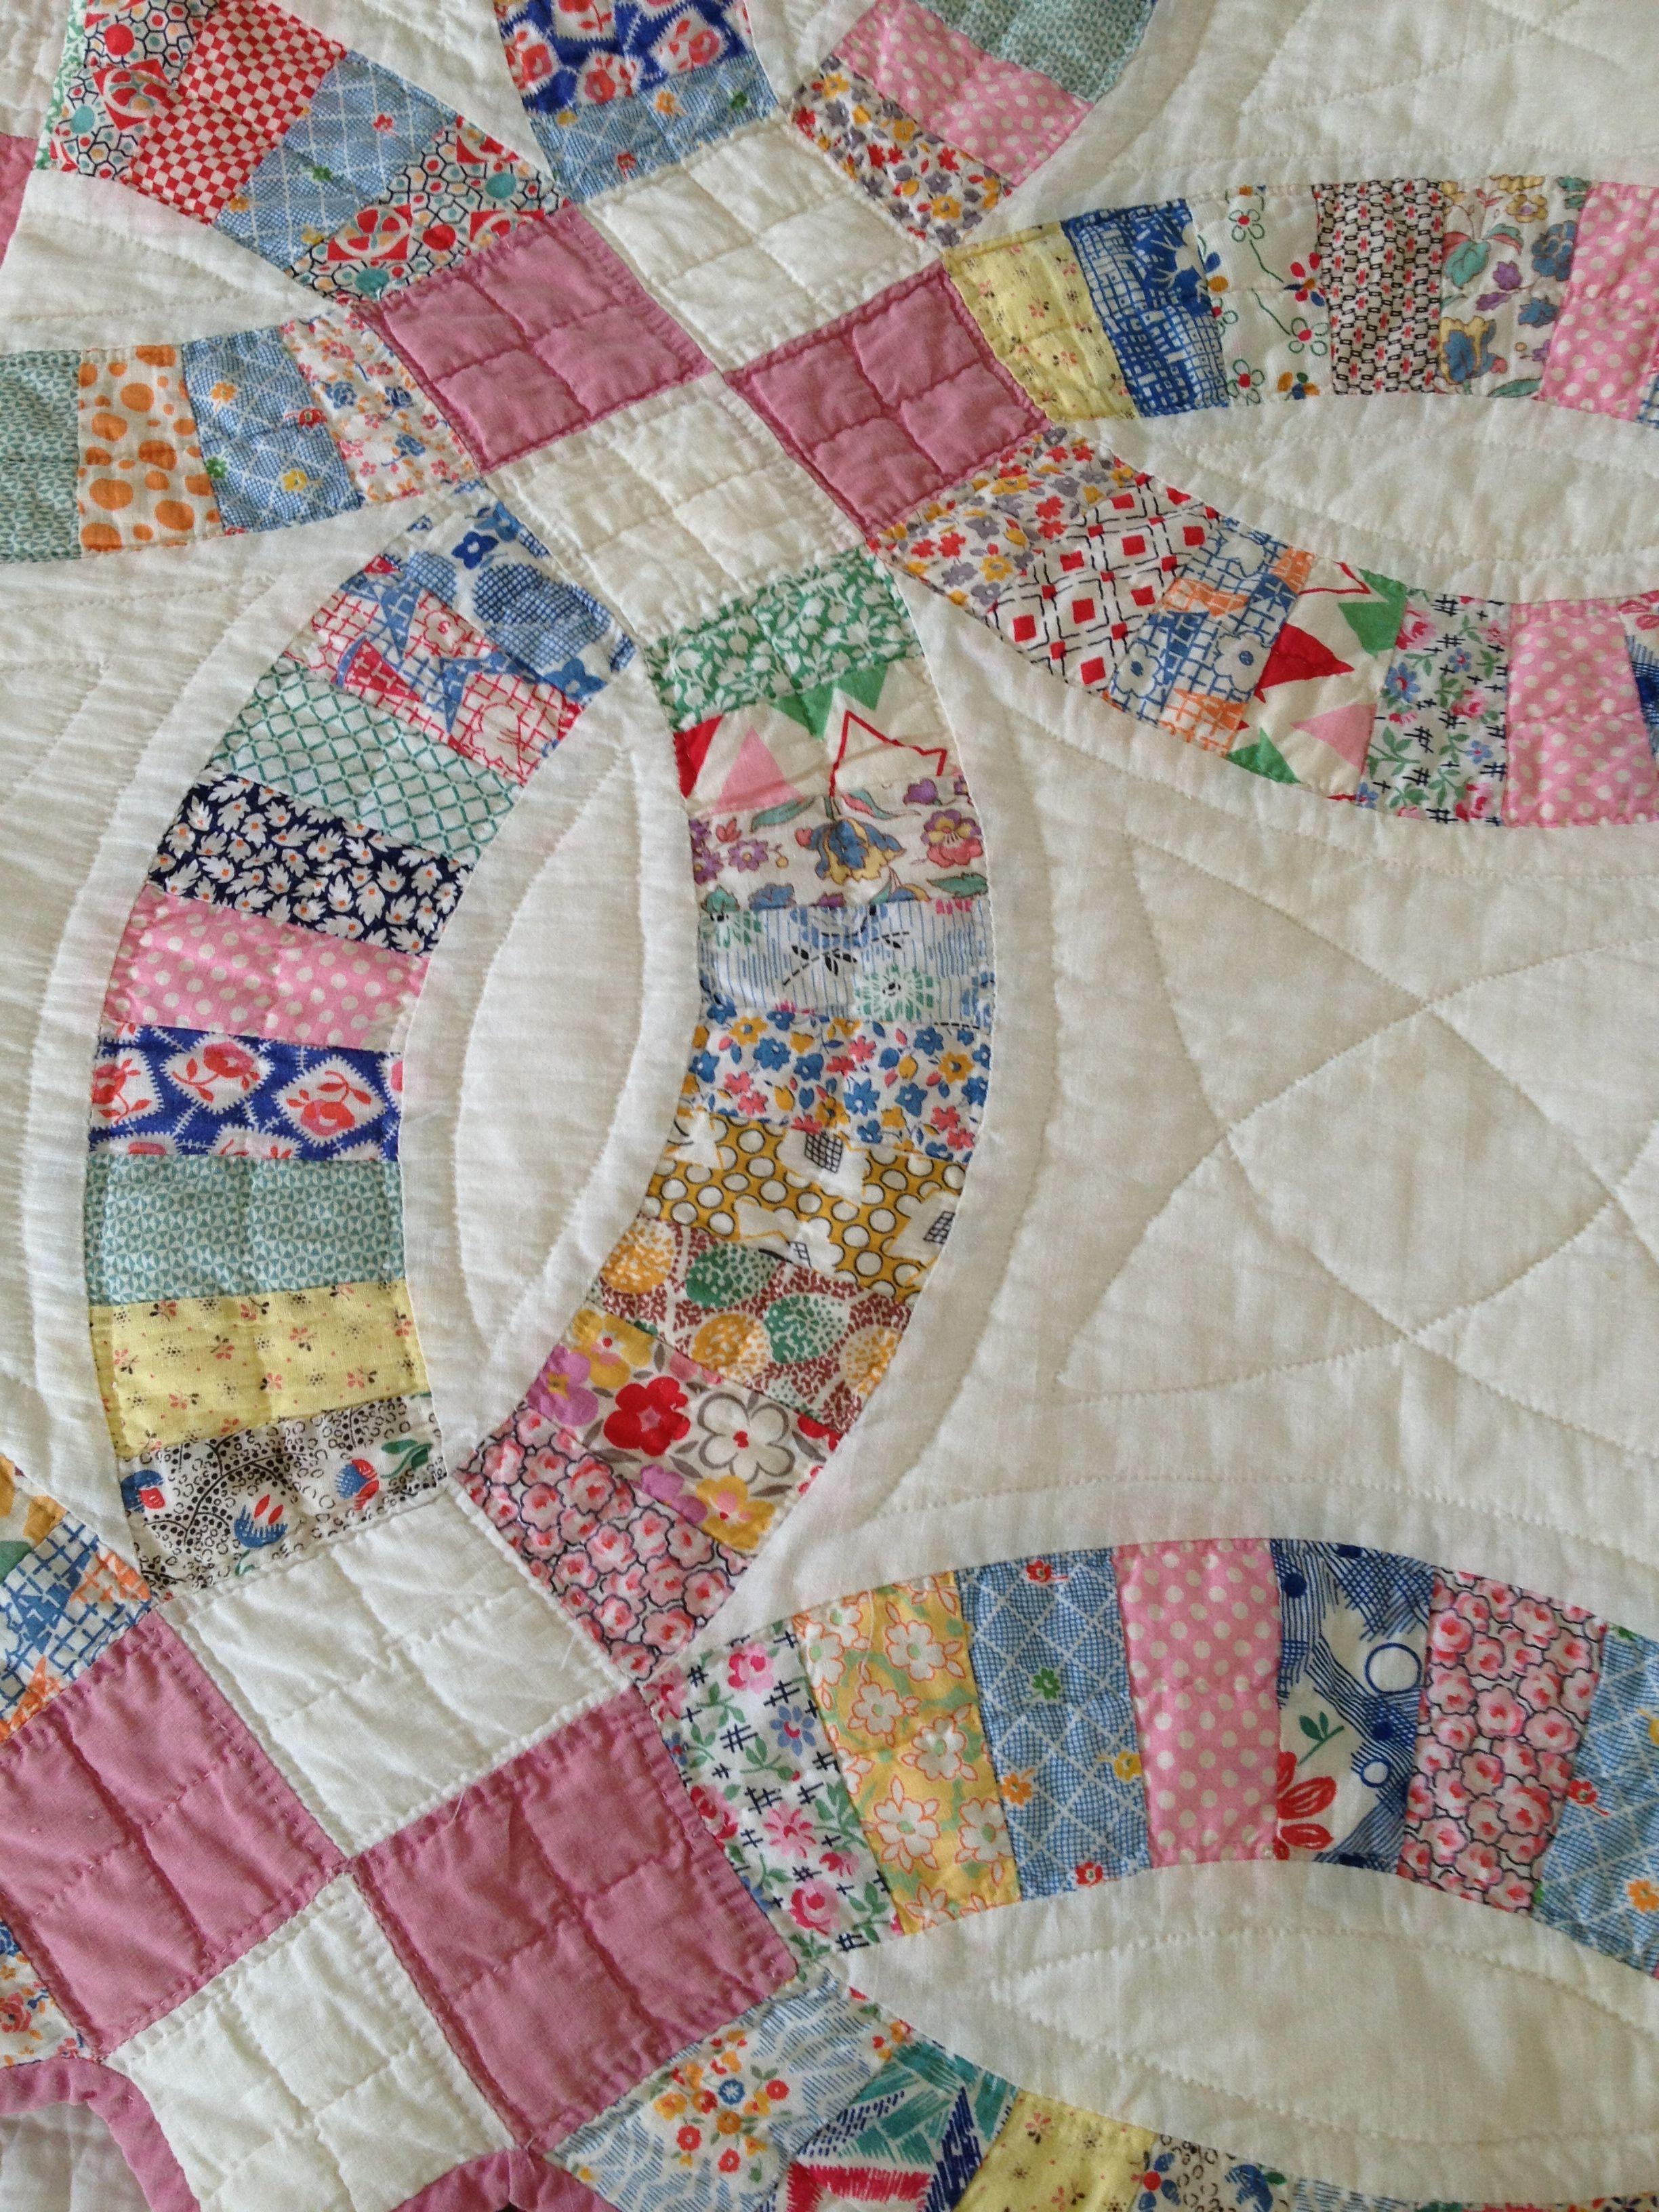 Lovely wedding ring quilt Applique, patchwork and quilts